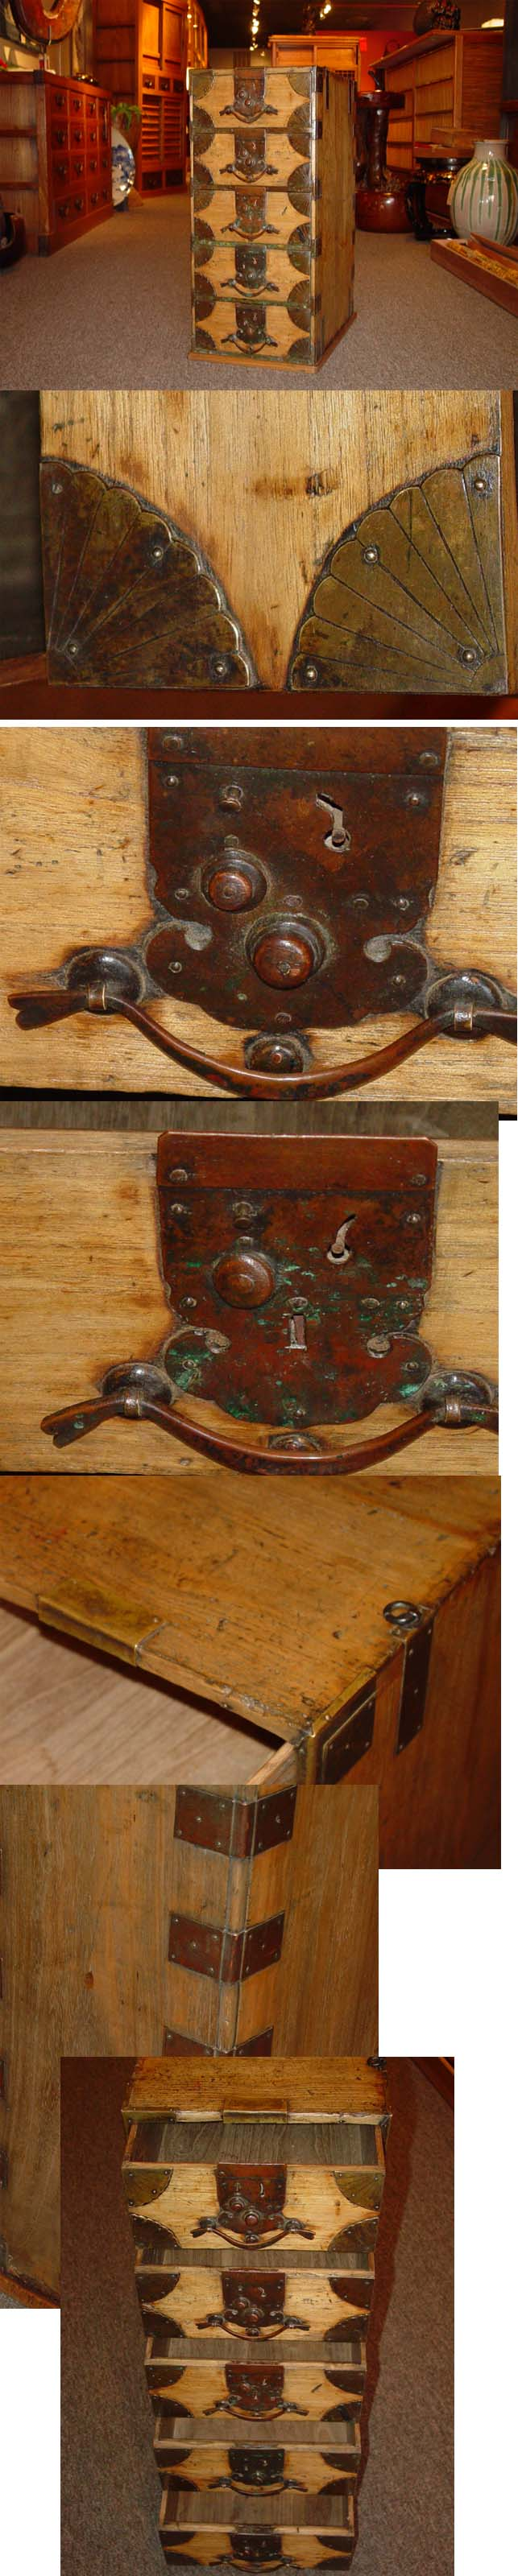 Another Nice Example Of An Antique Japanese Tansu Chest Japanese Furniture Japanese Design Japanese Traditional